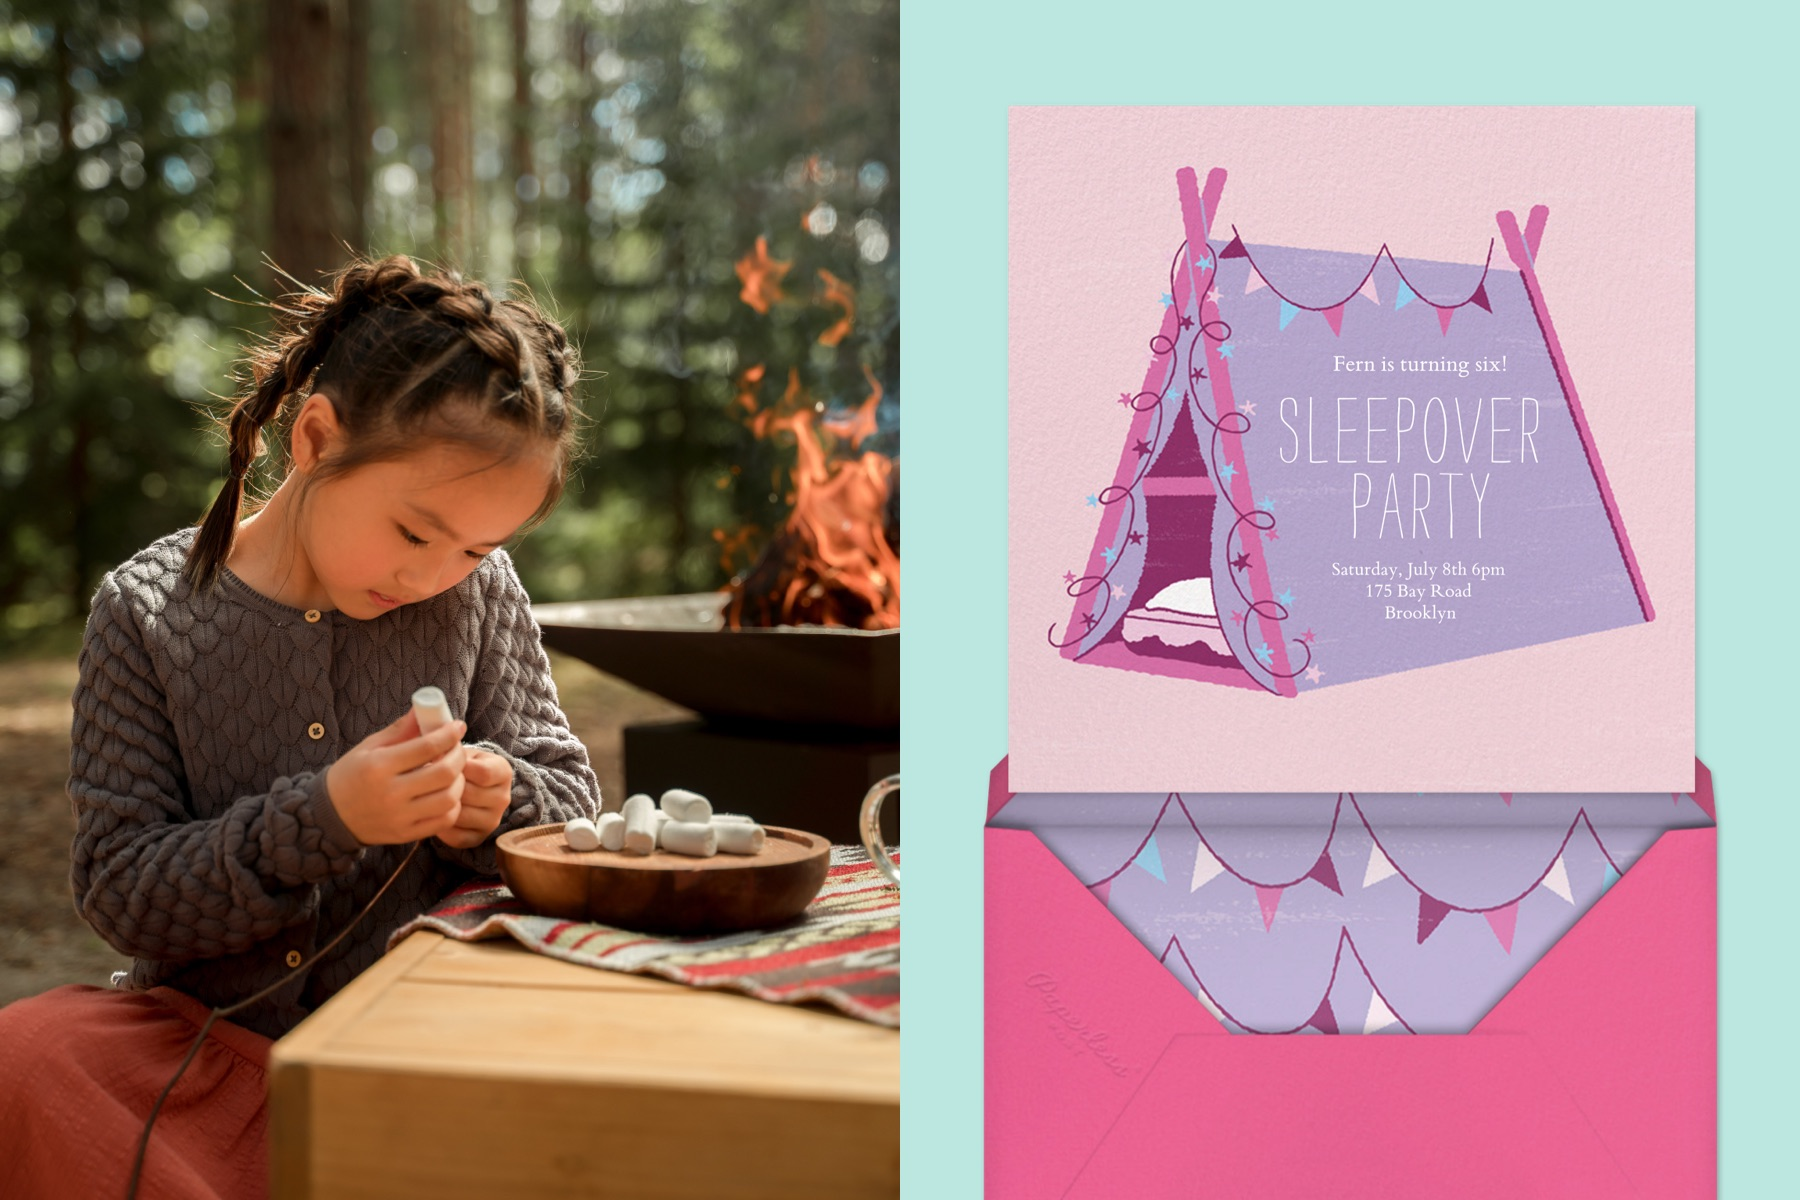 """Right: A child skewers marshmallows on a stick at a campground. 